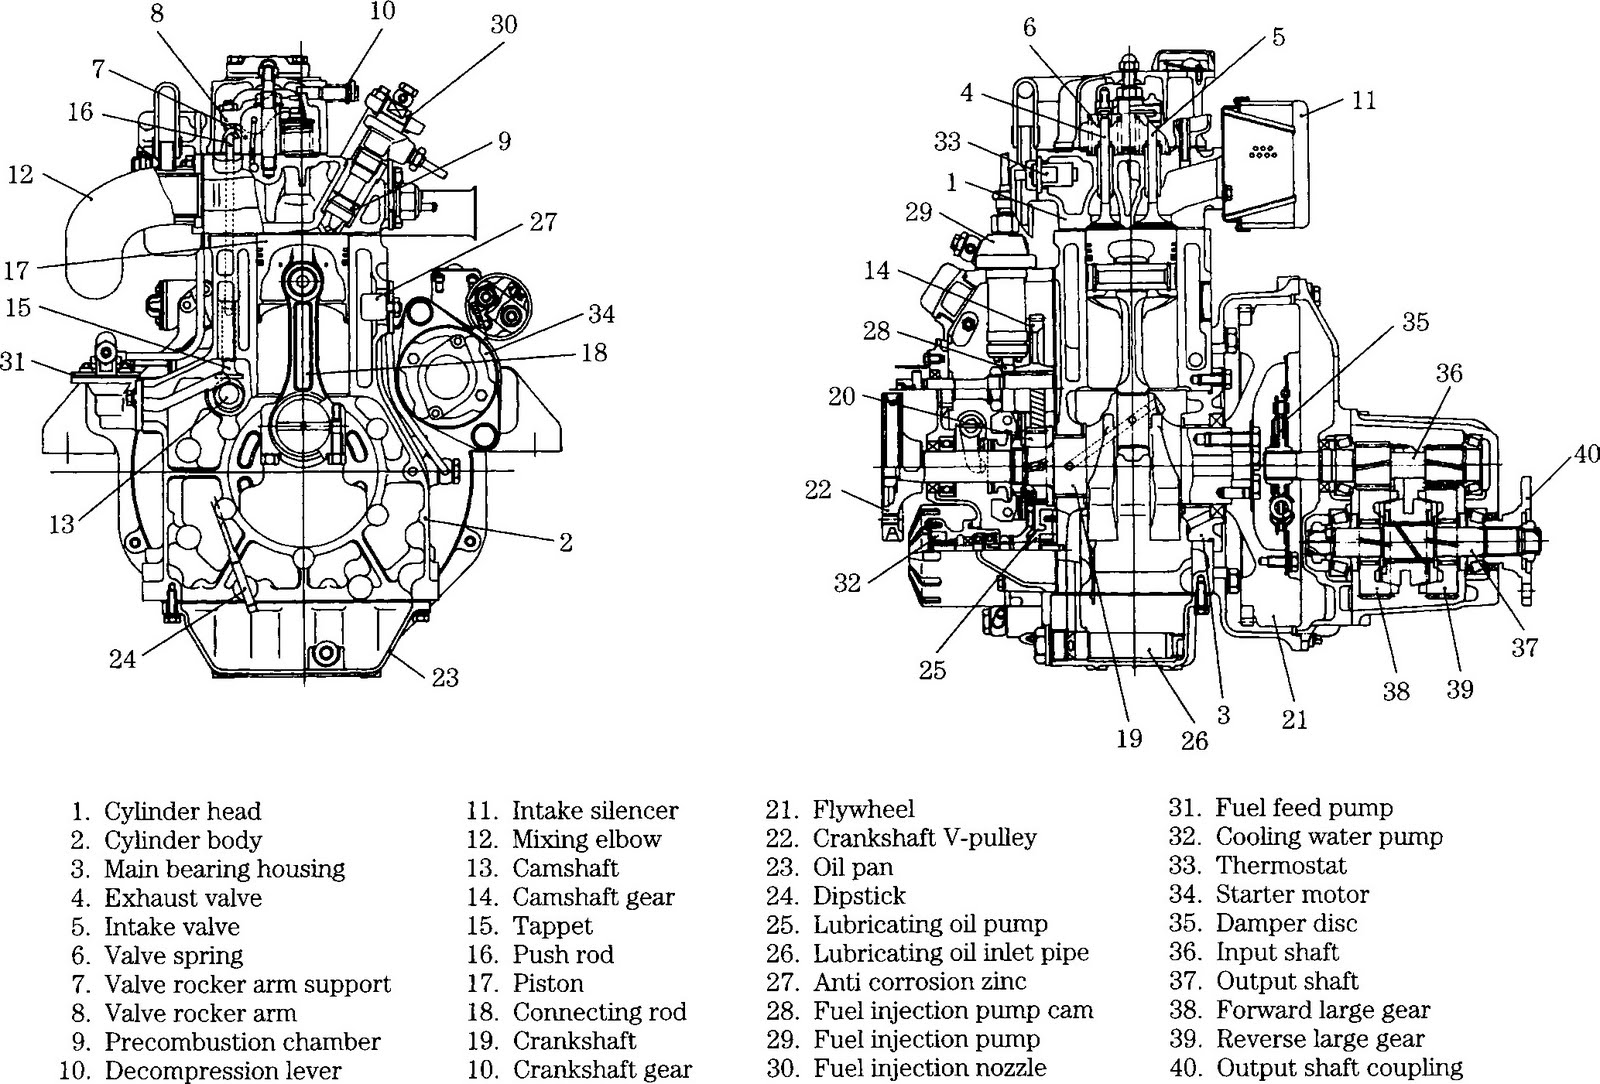 hight resolution of caterpillar 3208 marine engine diagram within diagram 3406c caterpillar engine oil presur 3116 cat engine fuel system